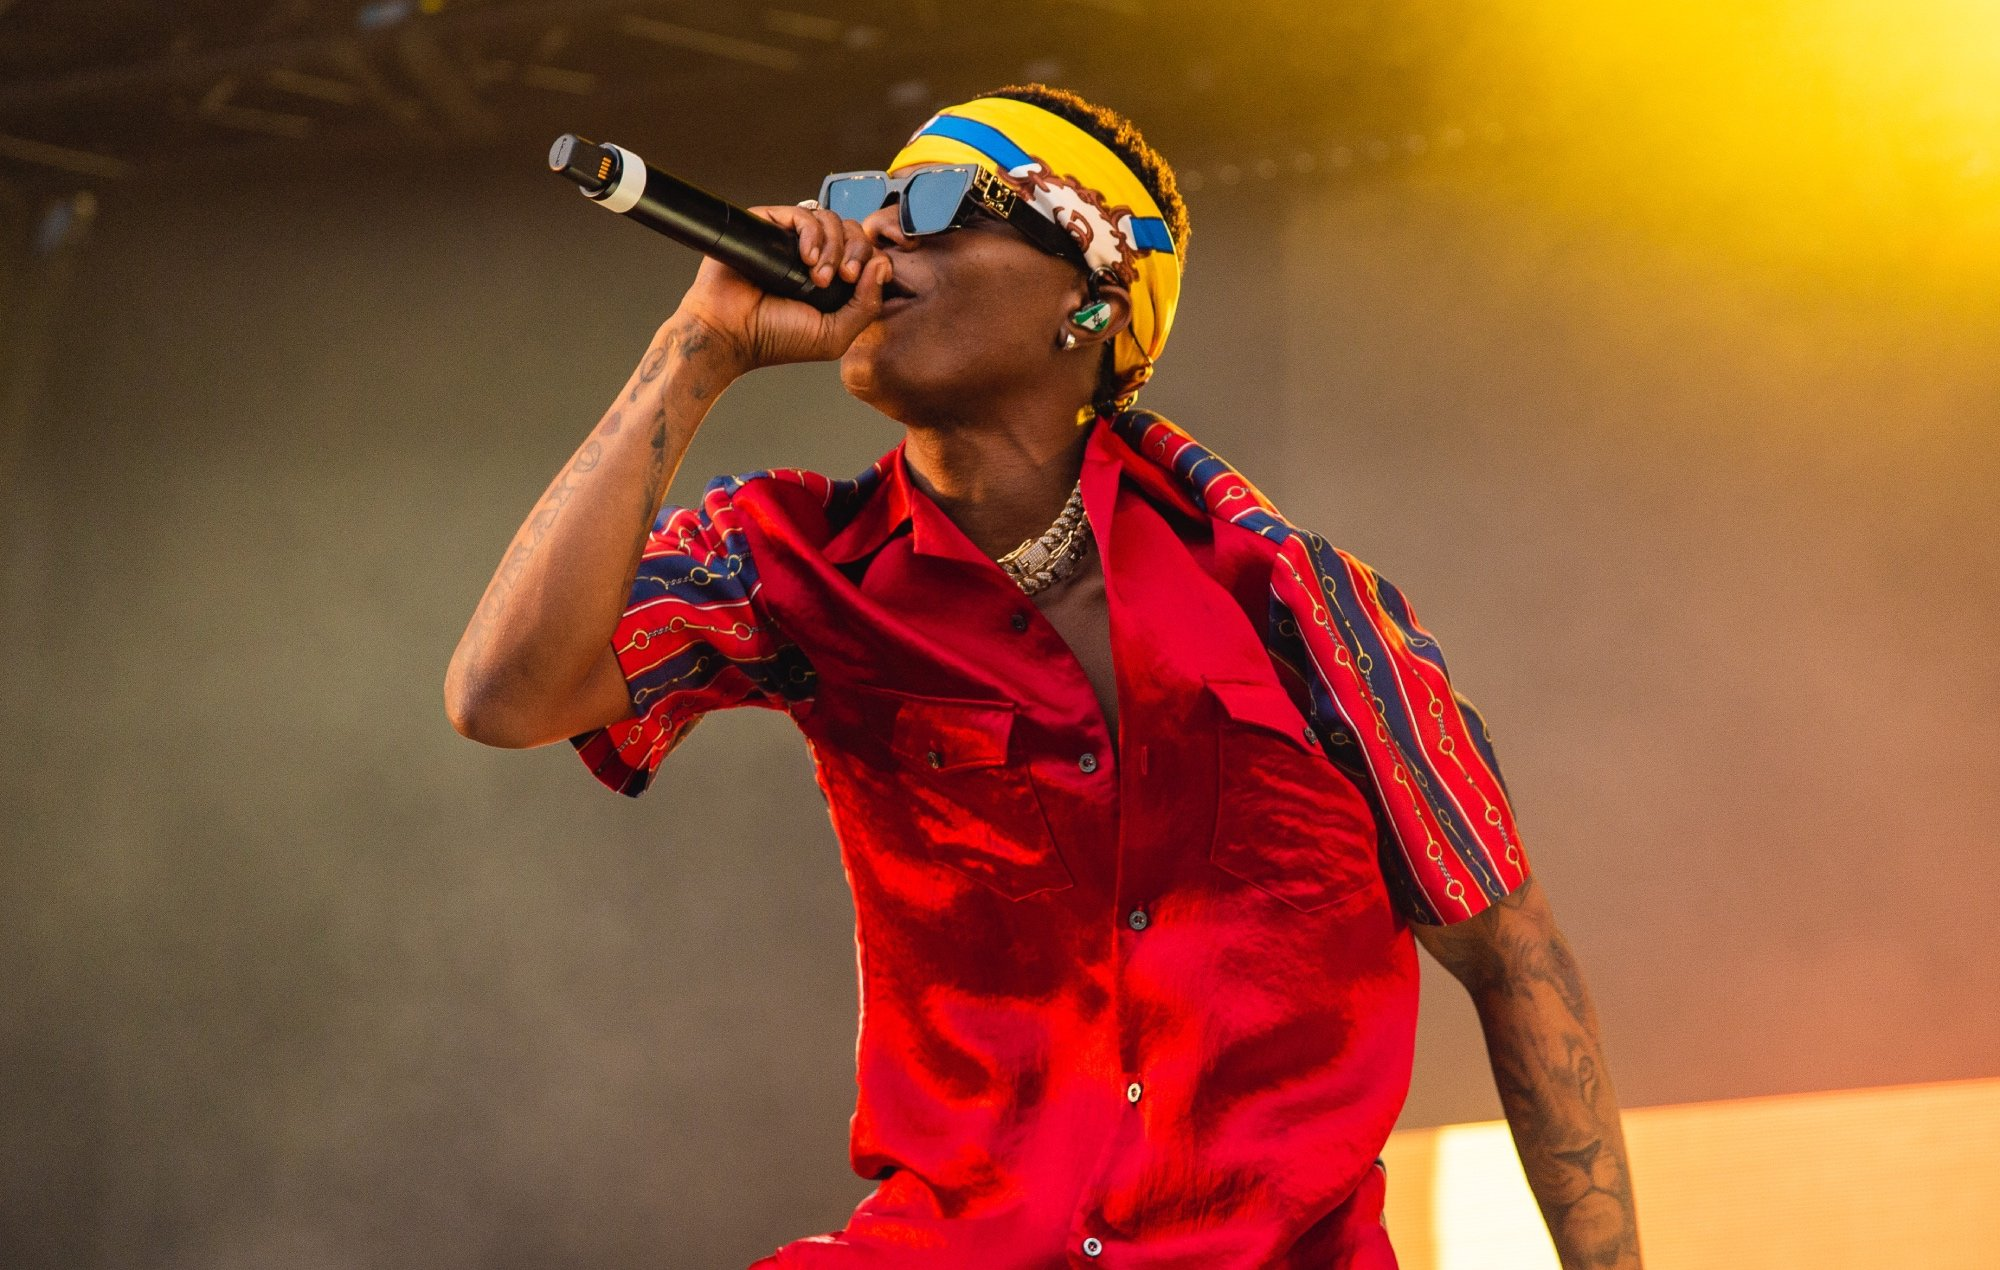 Wizkid announces one-off London O2 Arena show for 2021